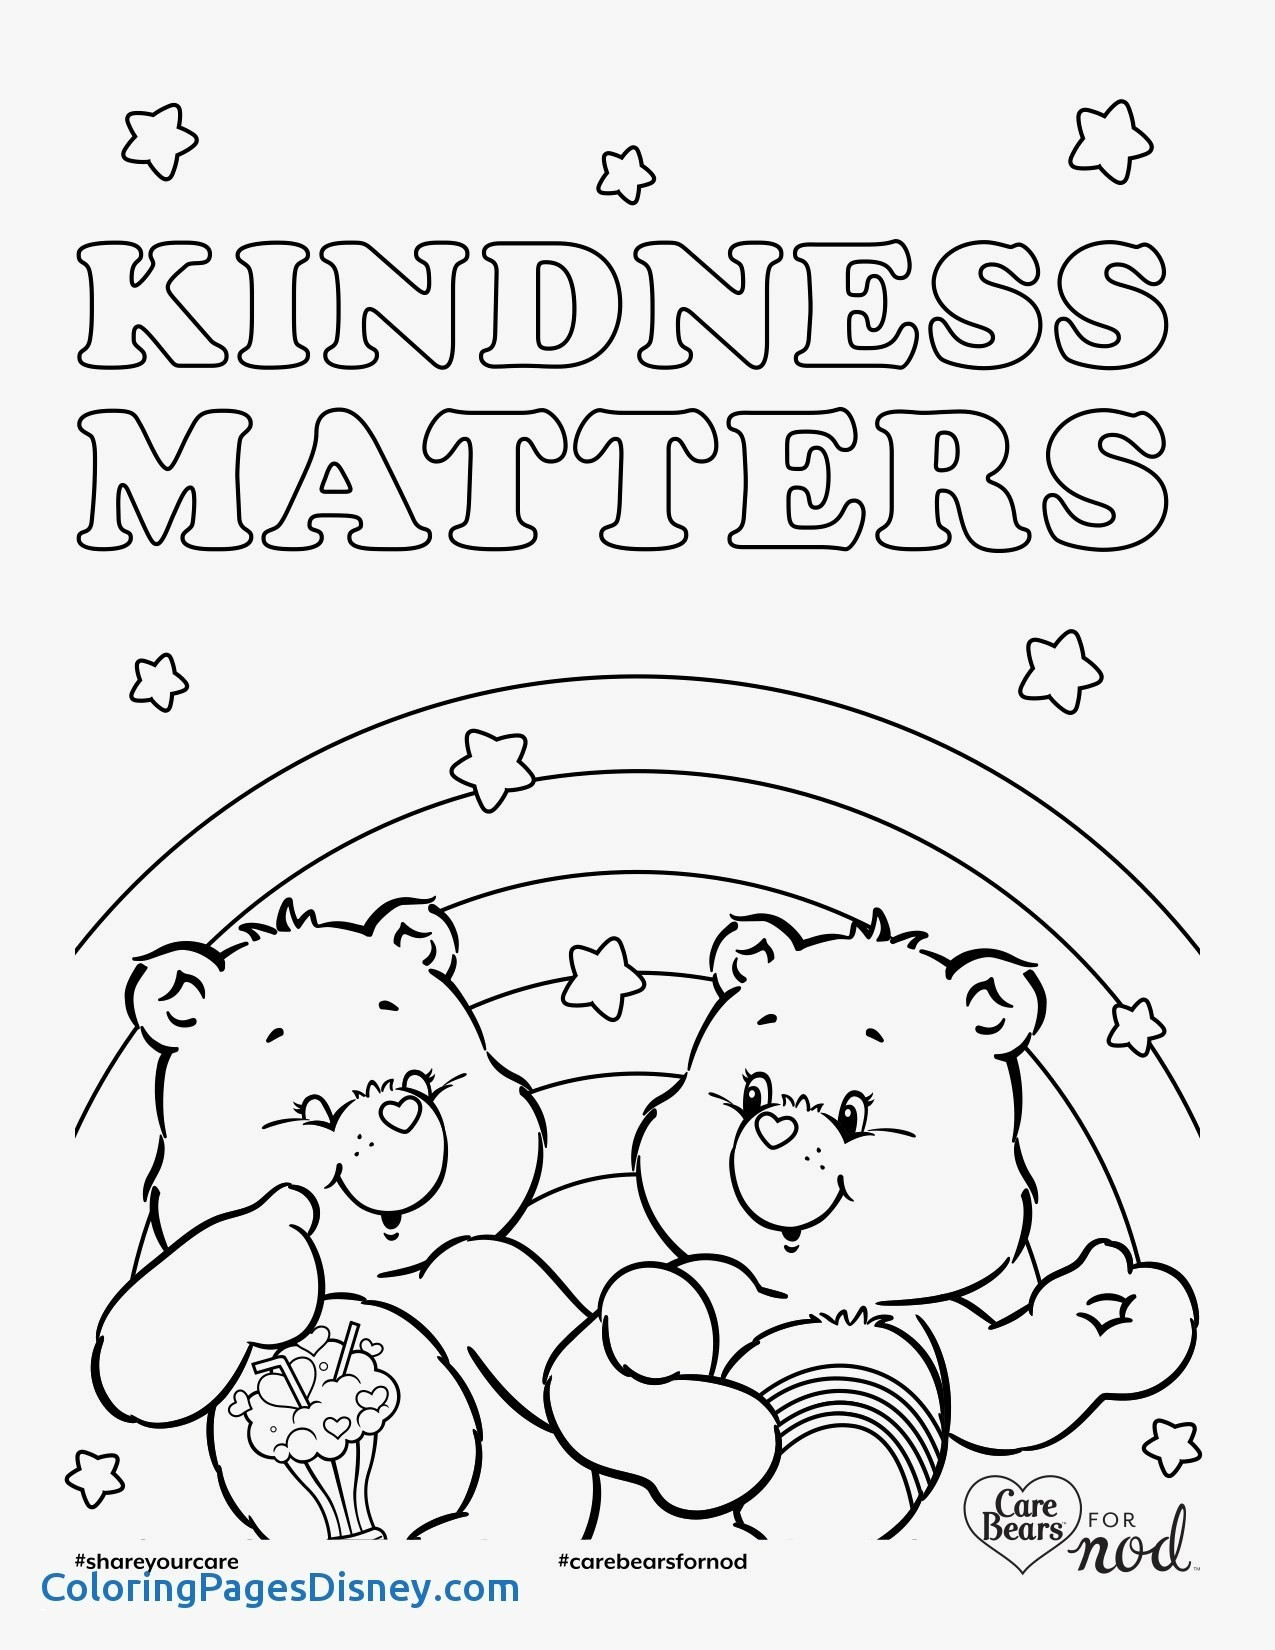 kindness coloring pages printable Download-Free Bunny Rabbit Coloring Pages Kindness Coloring Pages Printable Free Adult Lovely Awesome Od Dog 14-f